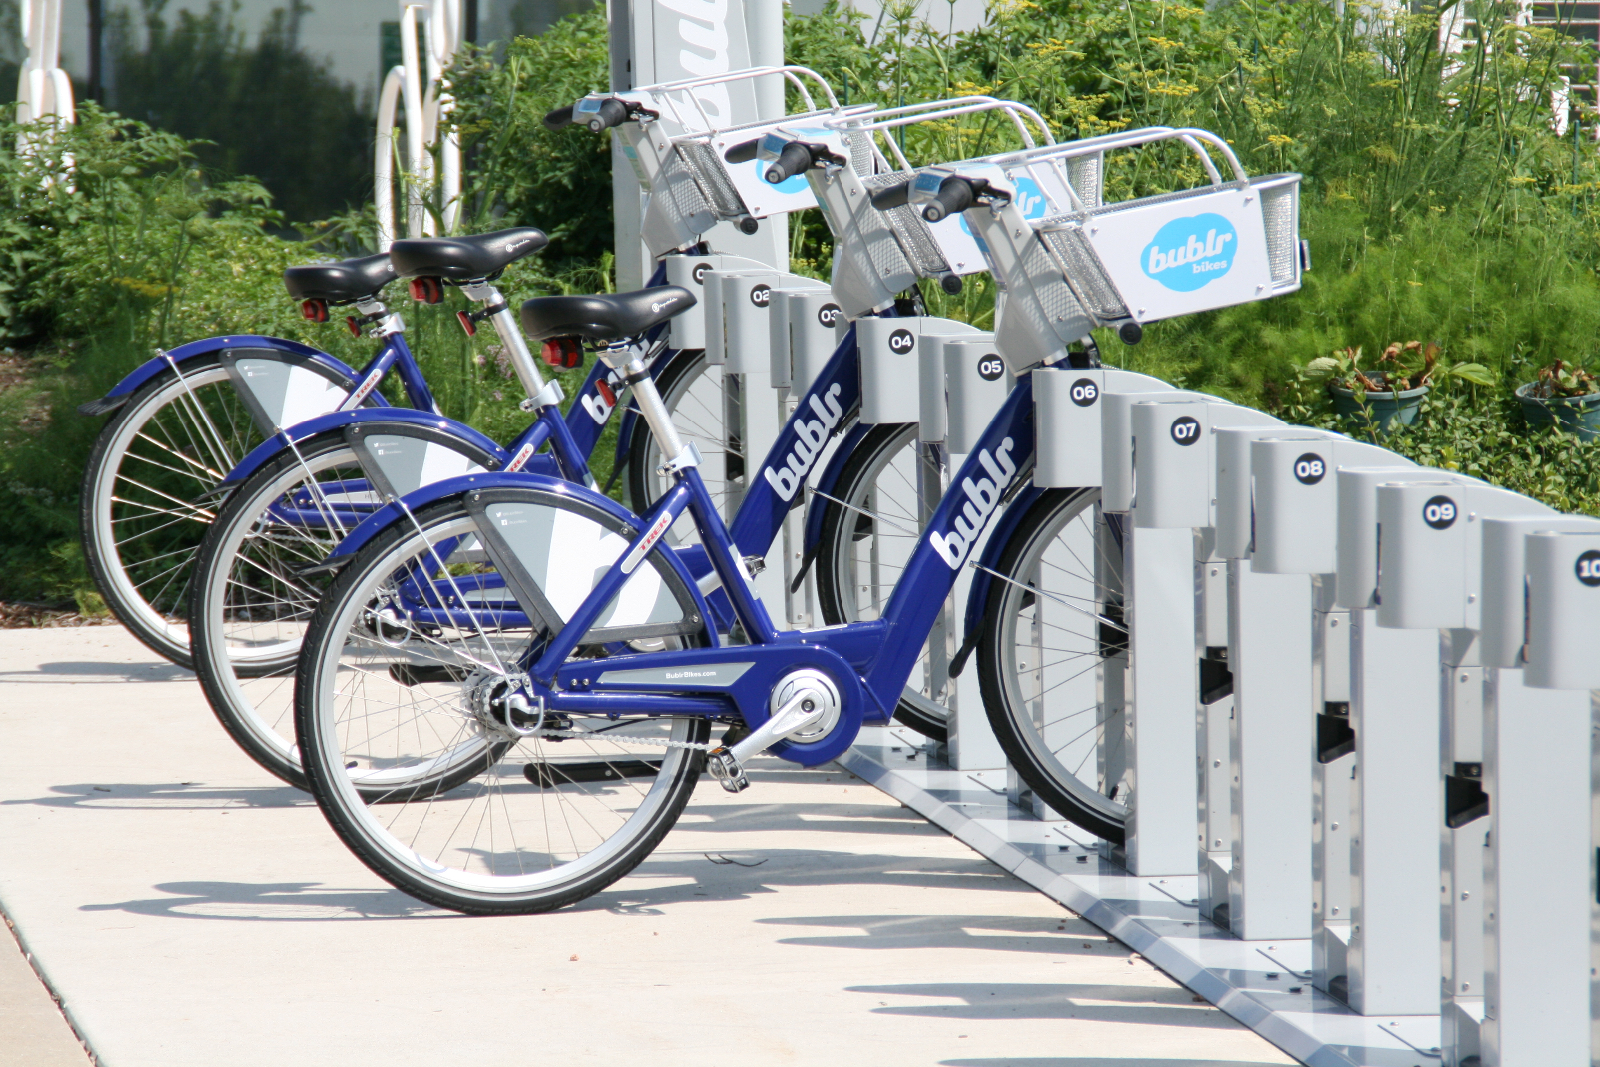 Bublr Bikes at Discovery World